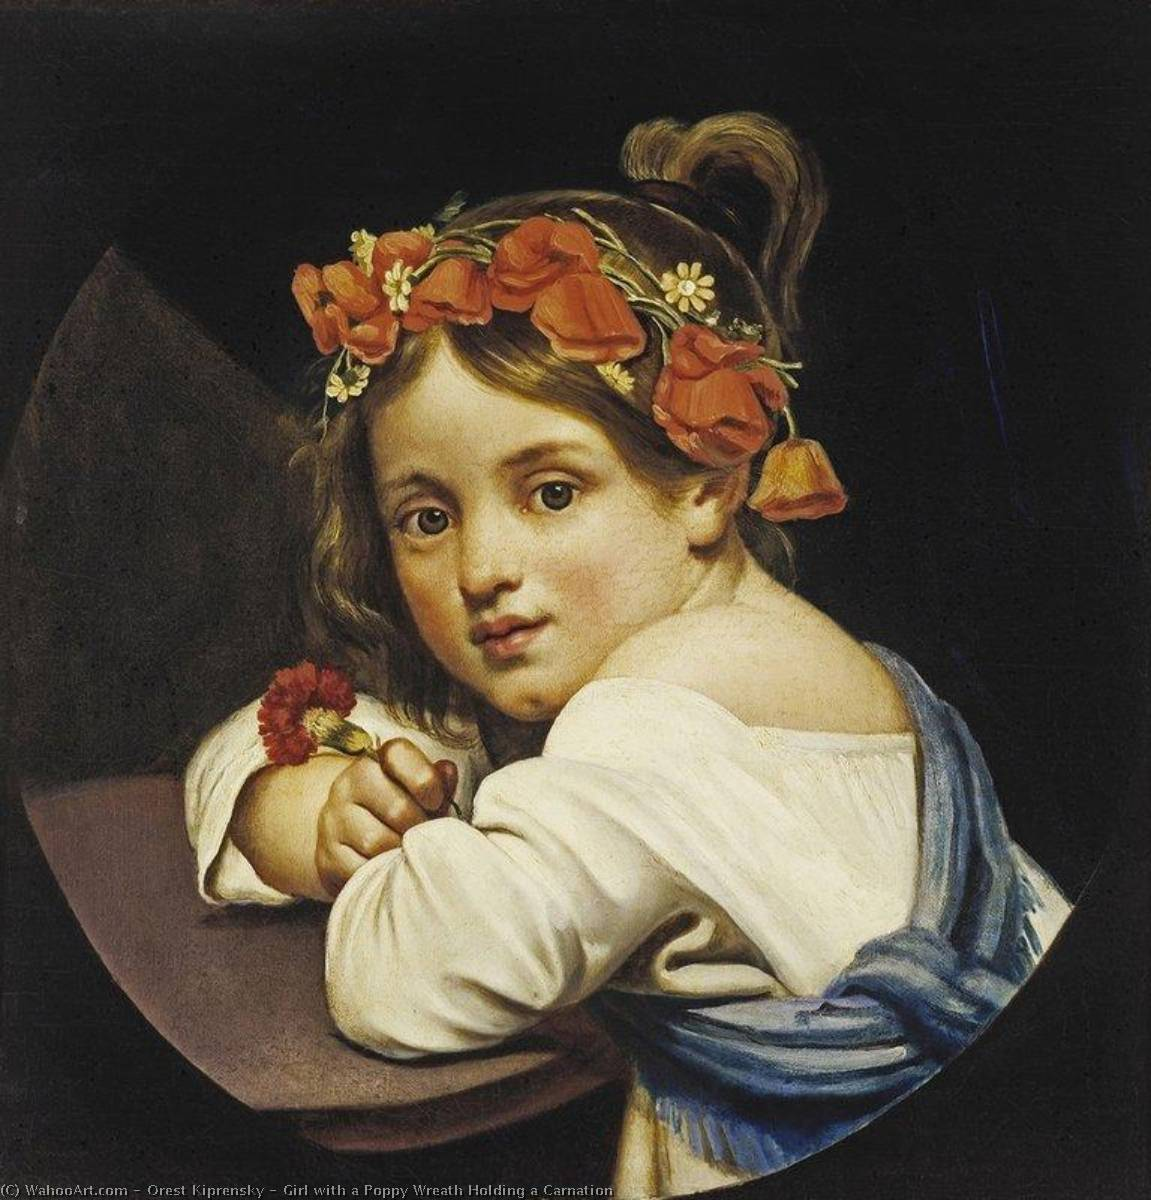 Girl with a Poppy Wreath Holding a Carnation, Oil On Canvas by Orest Adamovich Kiprensky (1782-1836, Russia)